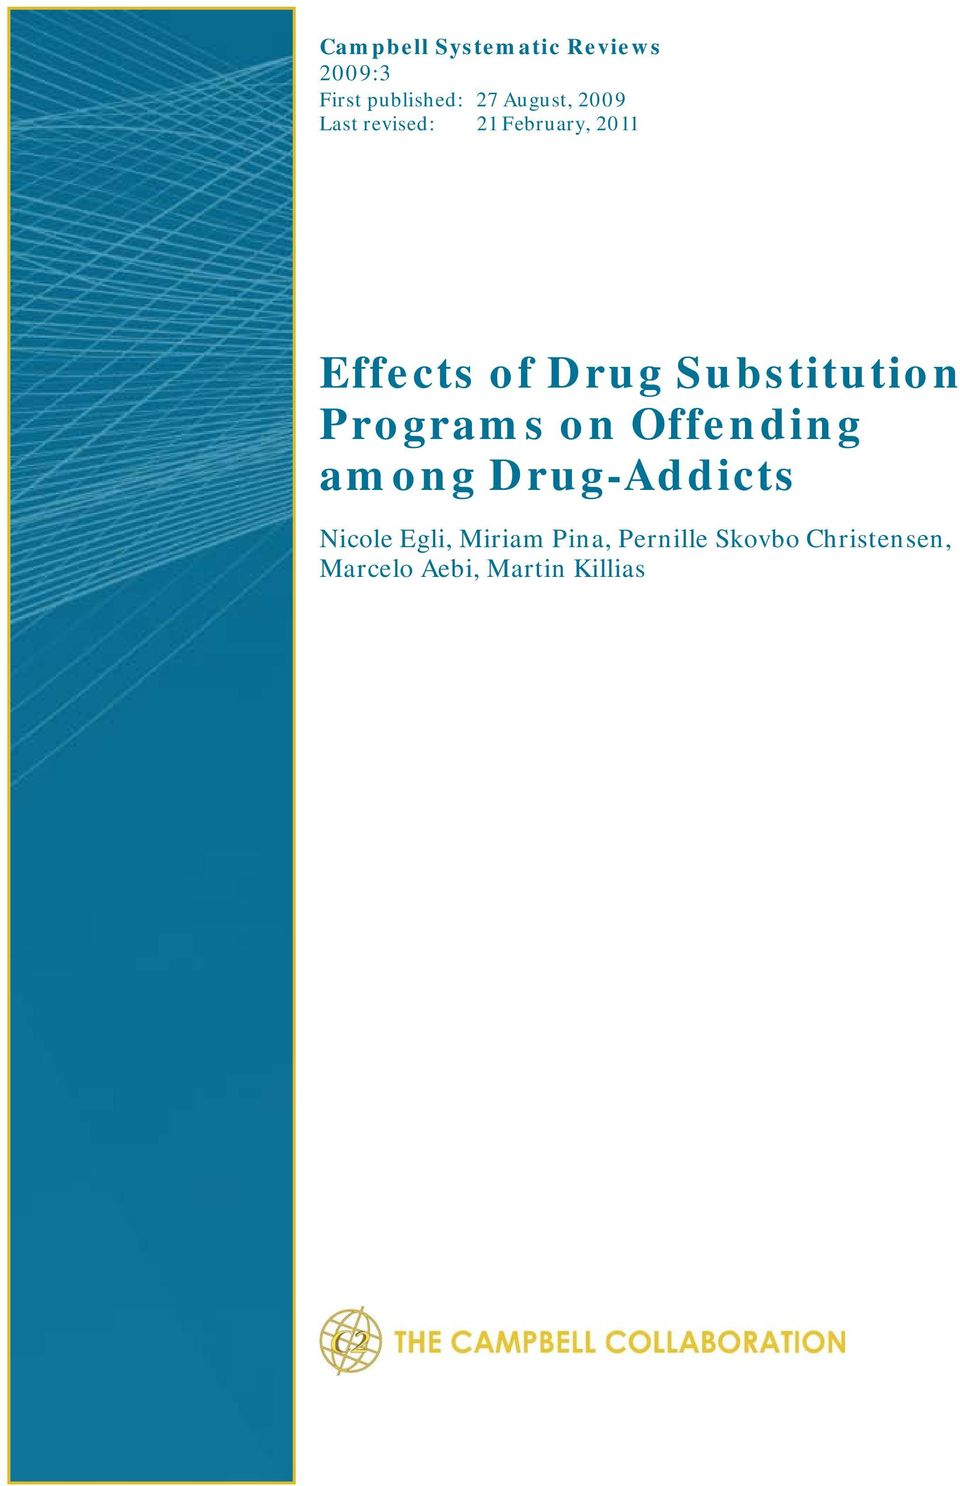 Substitution Programs on Offending among Drug-Addicts Nicole